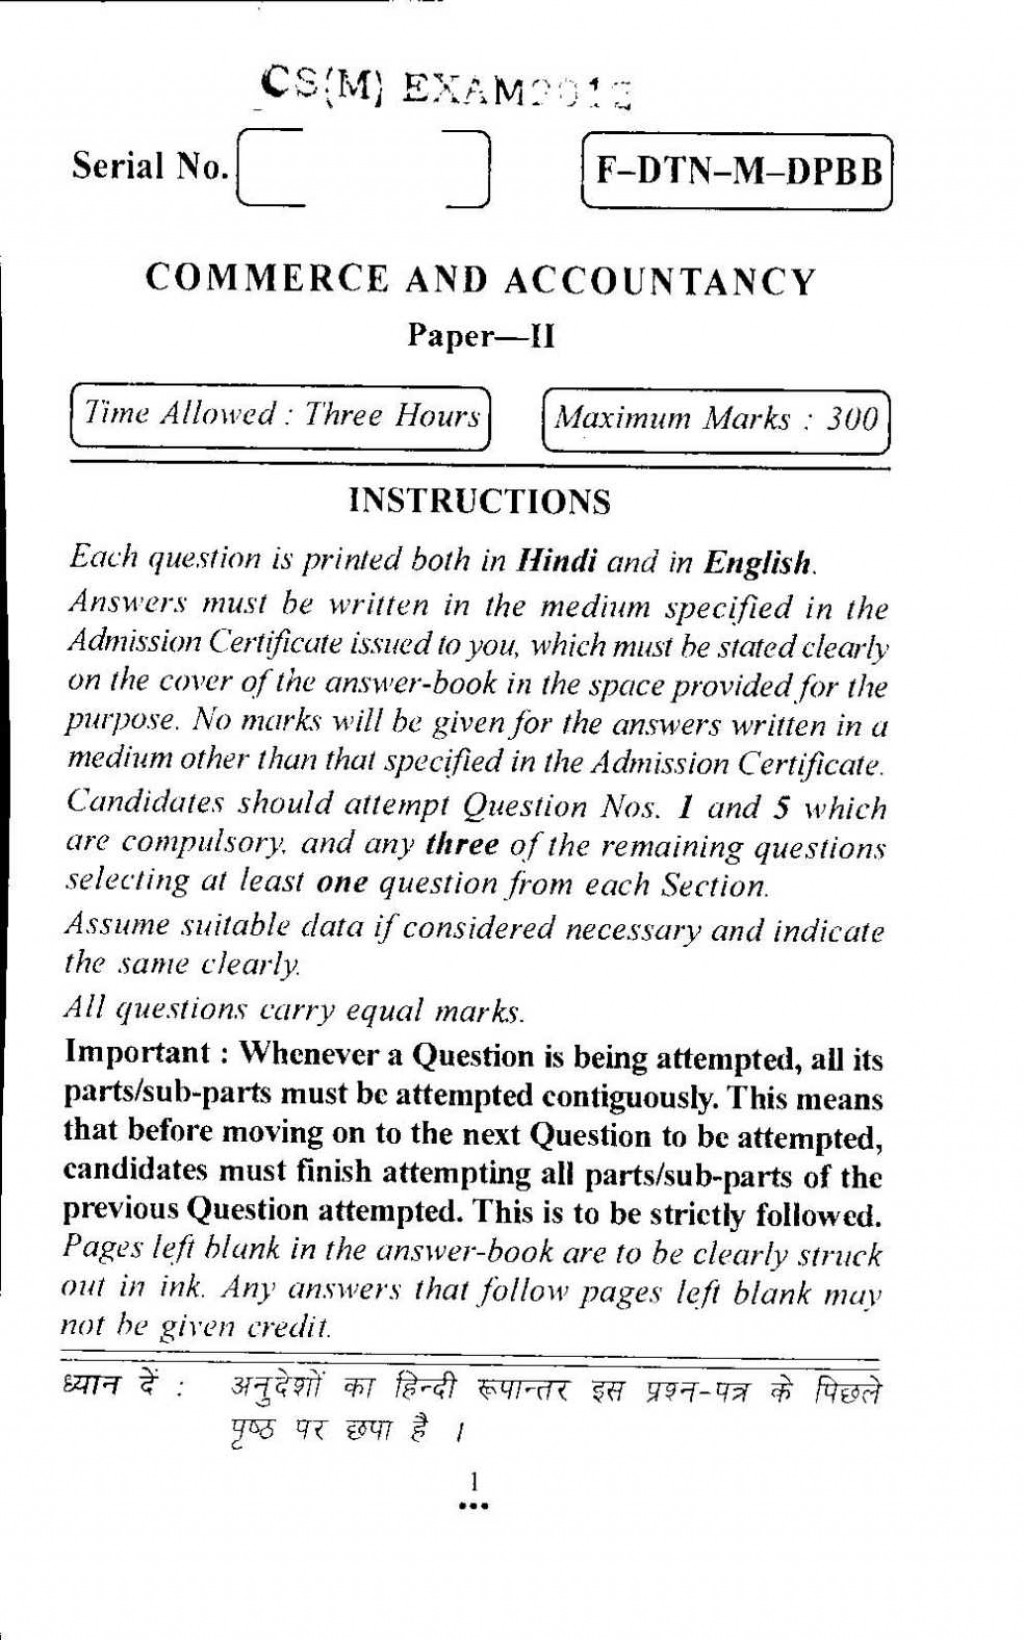 011 Civil Services Examination Commerce And Accountancy Paper Ii Previous Years Que Essay Example Marvelous Racism Conclusion Pdf Tkam Large